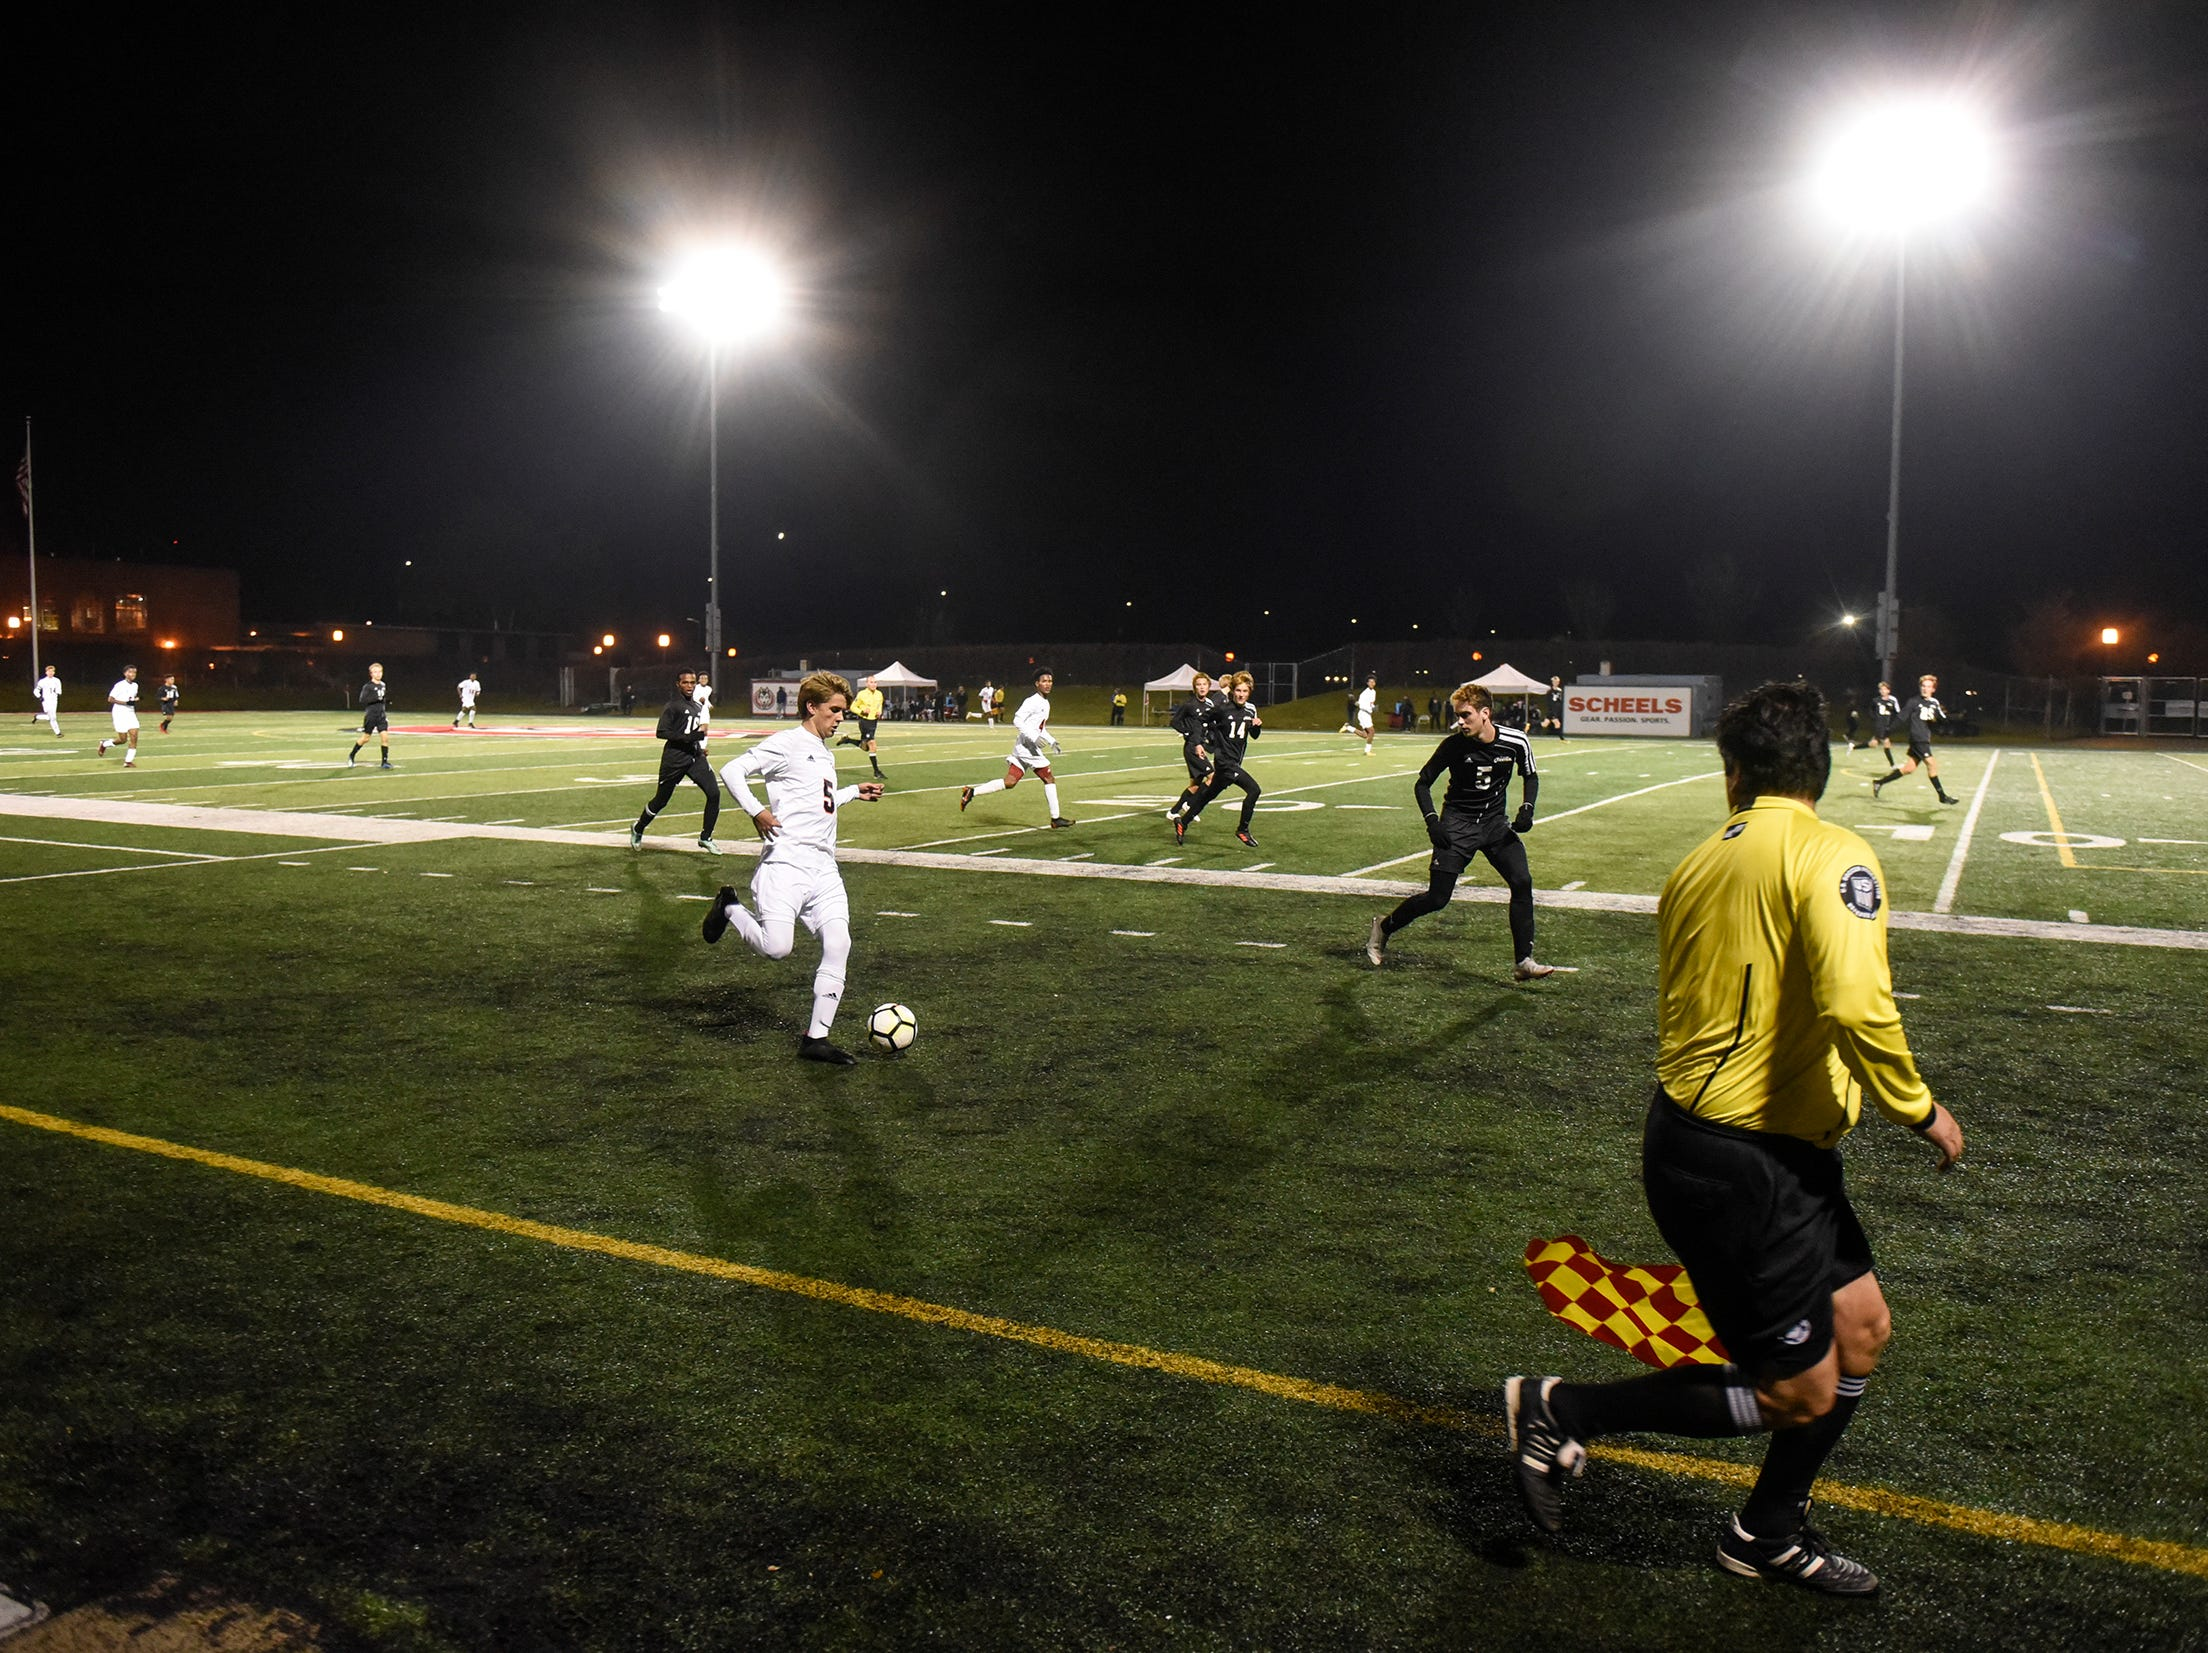 Players compete under the lights during the Thursday, Oct. 25, Class 2A state quarterfinal game at Husky Stadium in St. Cloud.